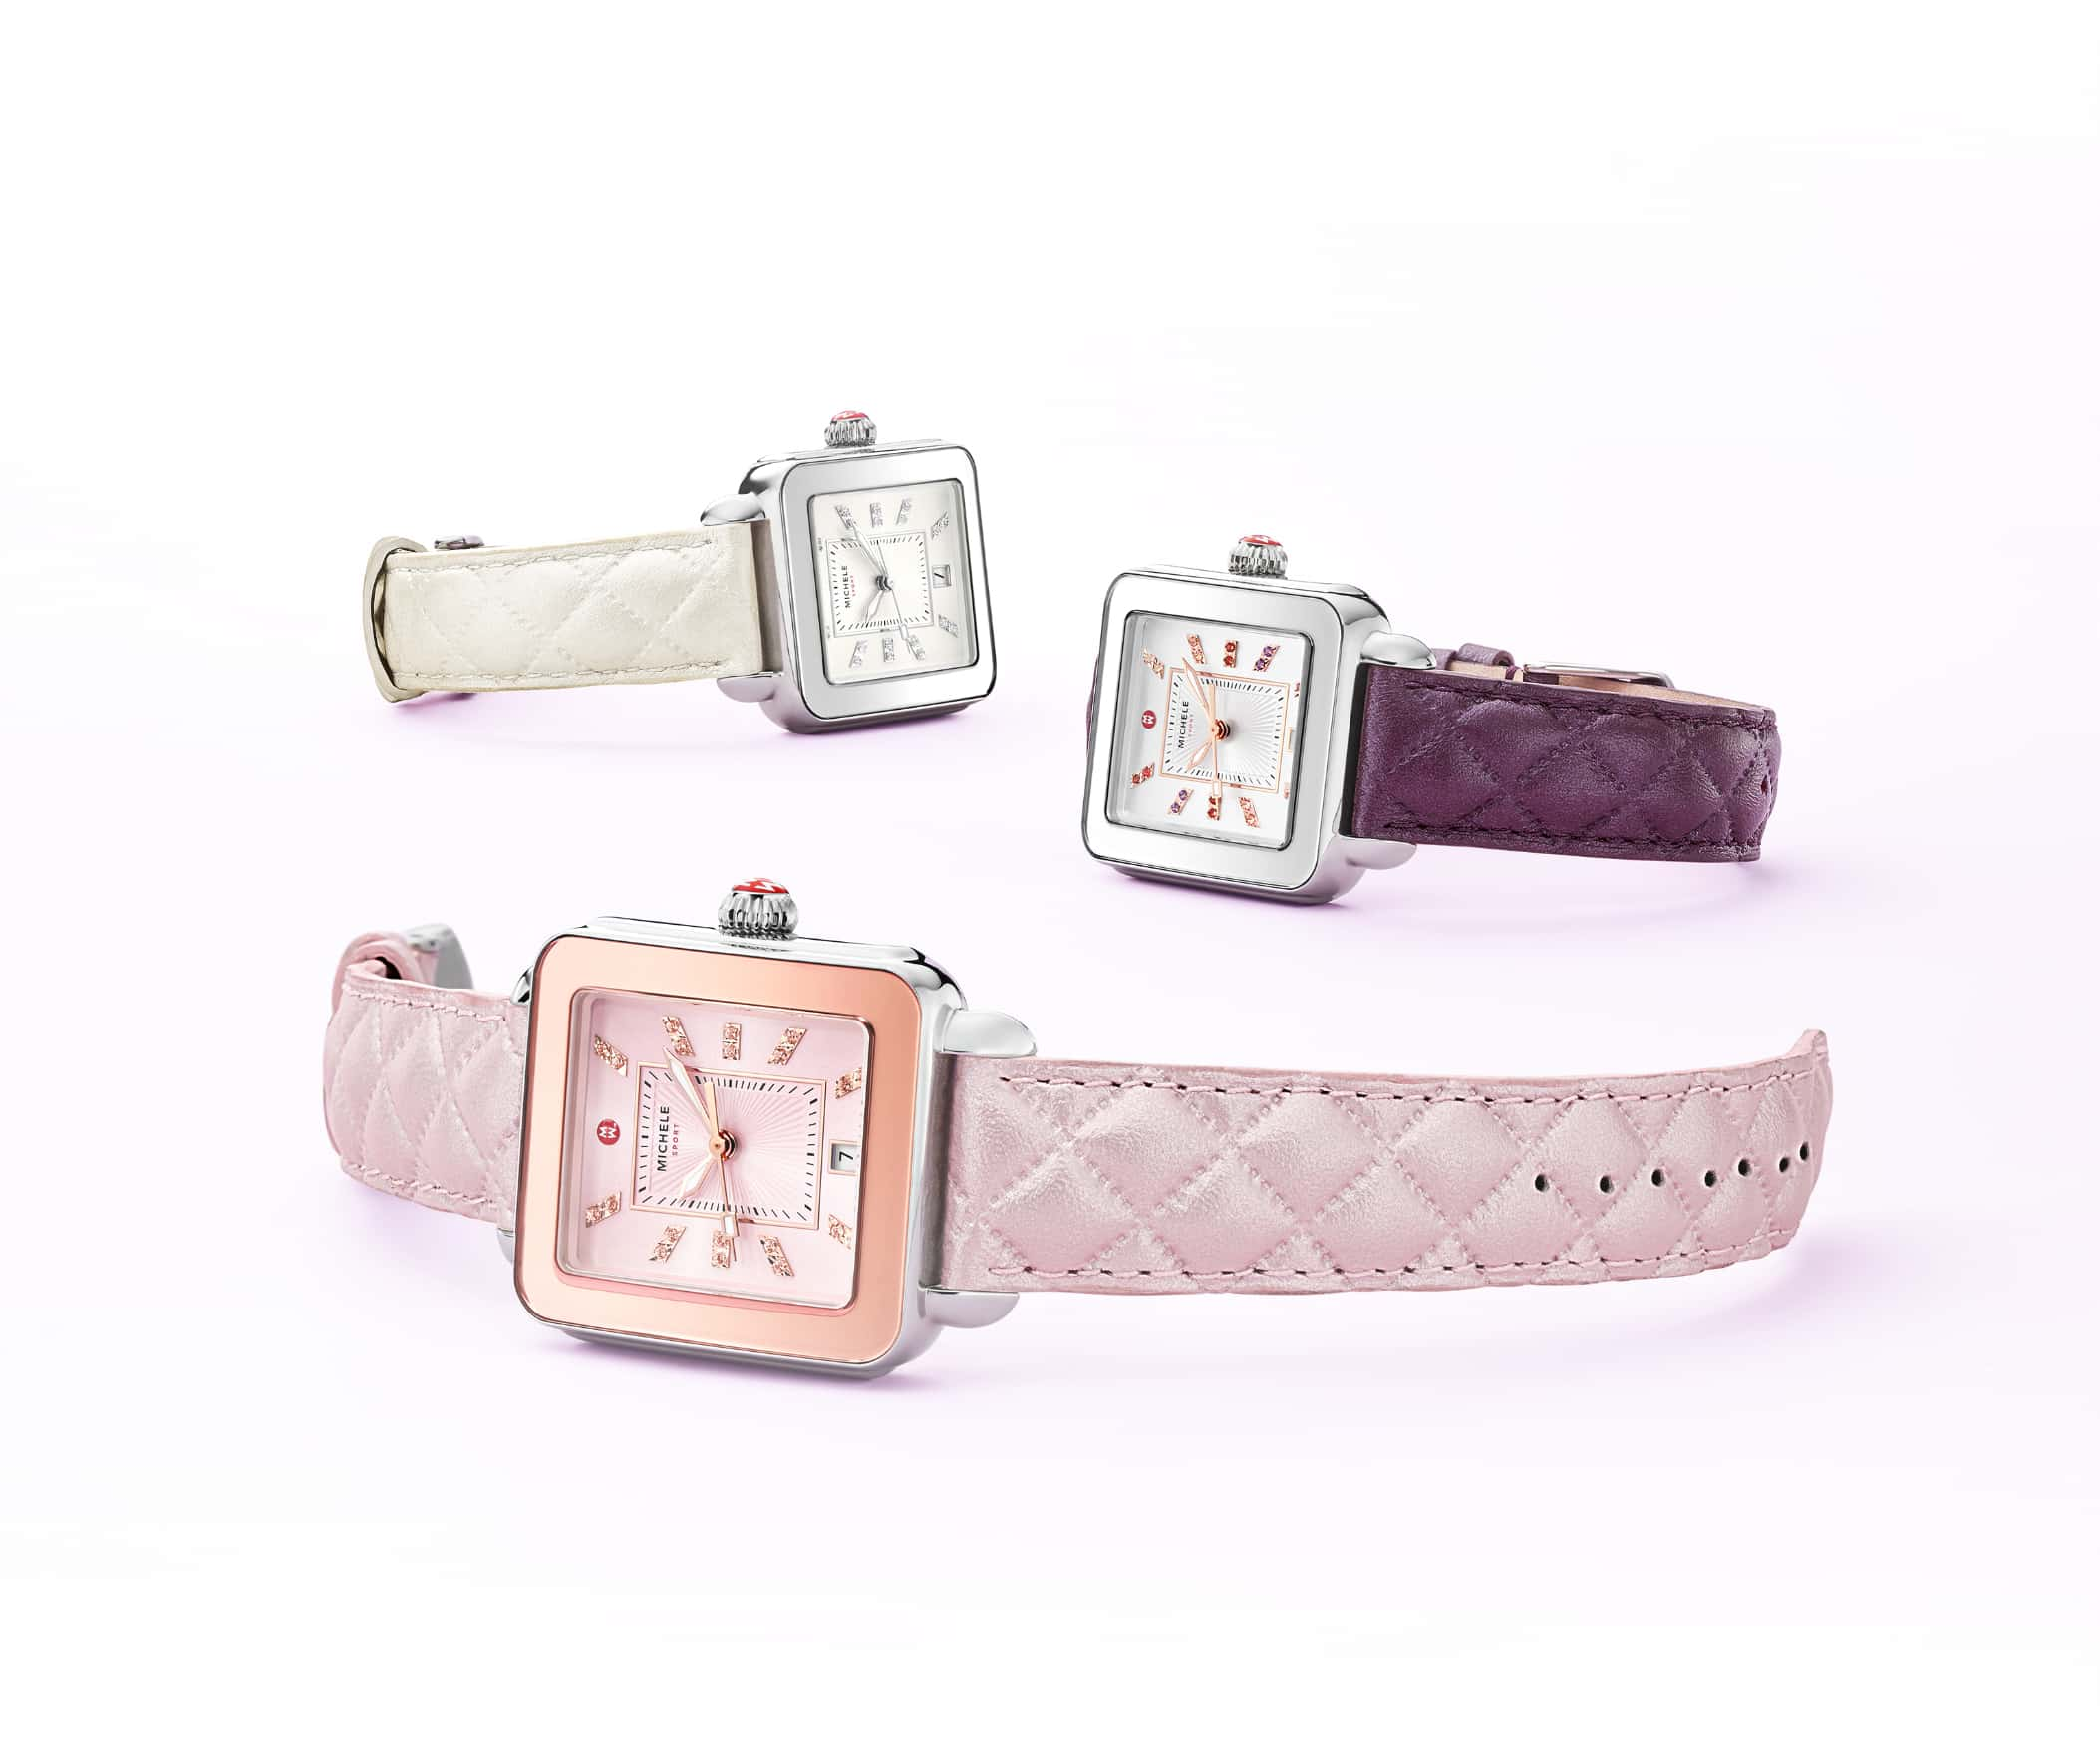 Three Deco Sport watches featuring sheen-finished quilted leather straps in lilac, violet and whtie and colorful topaz indexes.